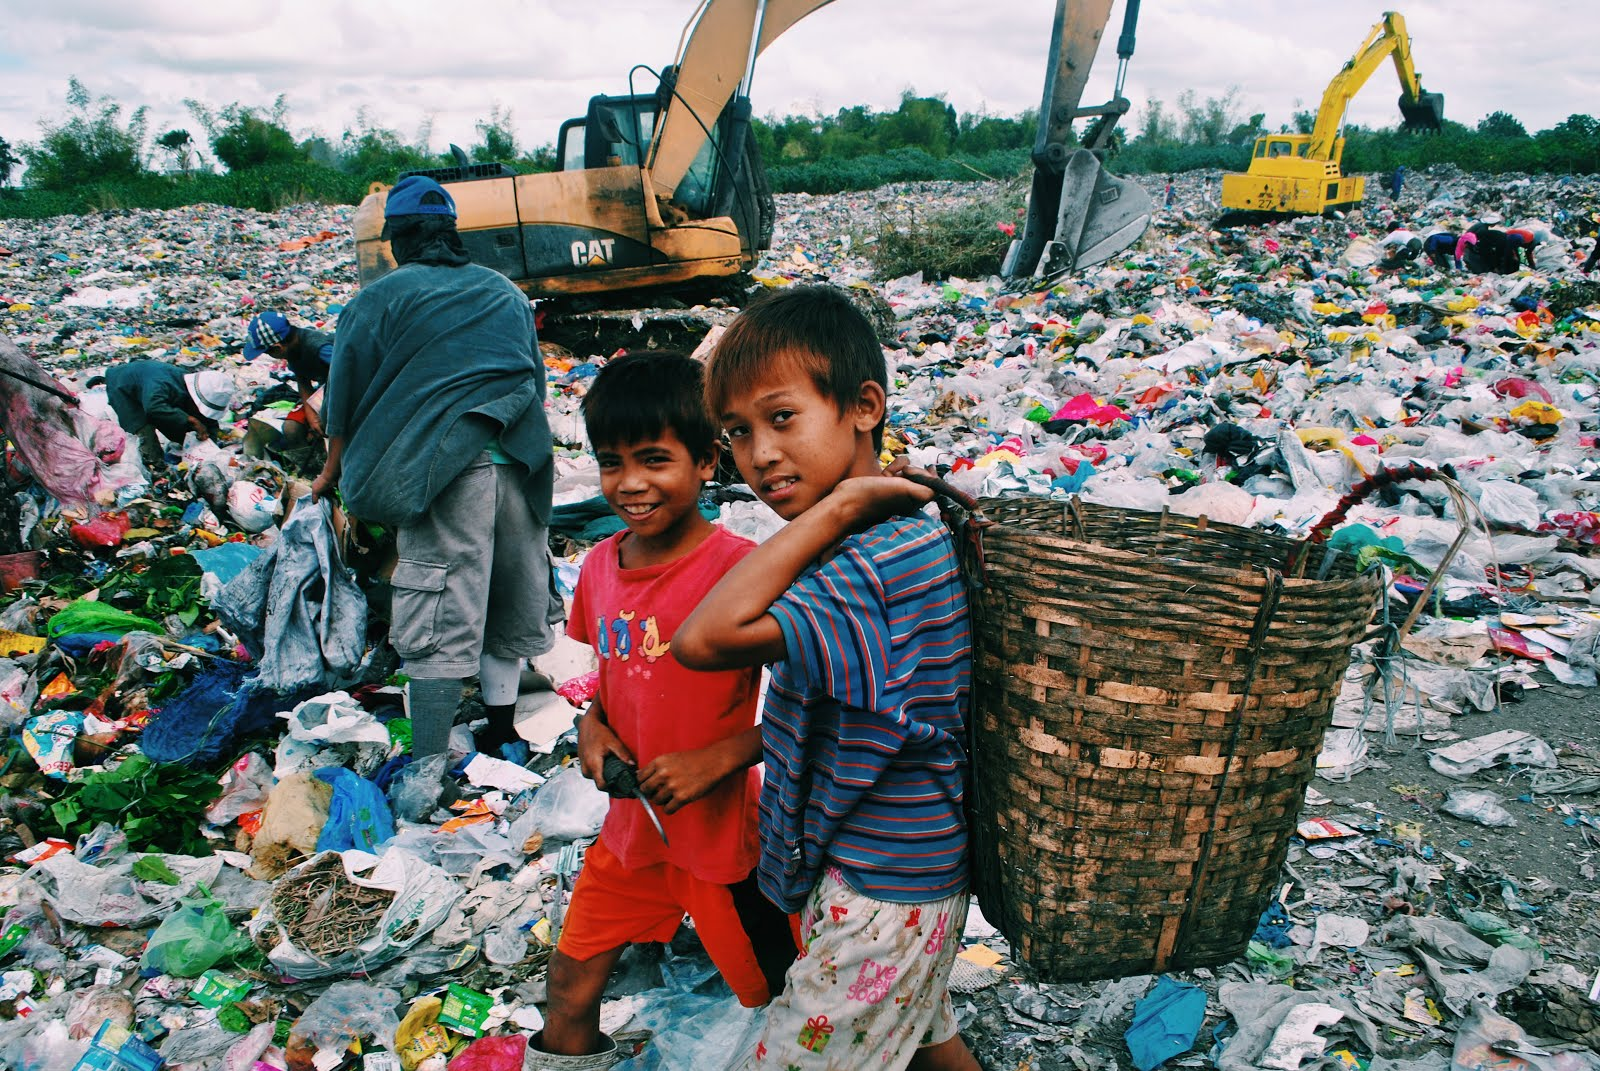 Calajunan Colors  Calajunan Dumpsite, Mandurriao, Advocacy, Poverty, Landfill, Iloilo, Basic Mases Integration, Urban poor, Scrap, Backhoe, Youth, Squatters, Shanty,